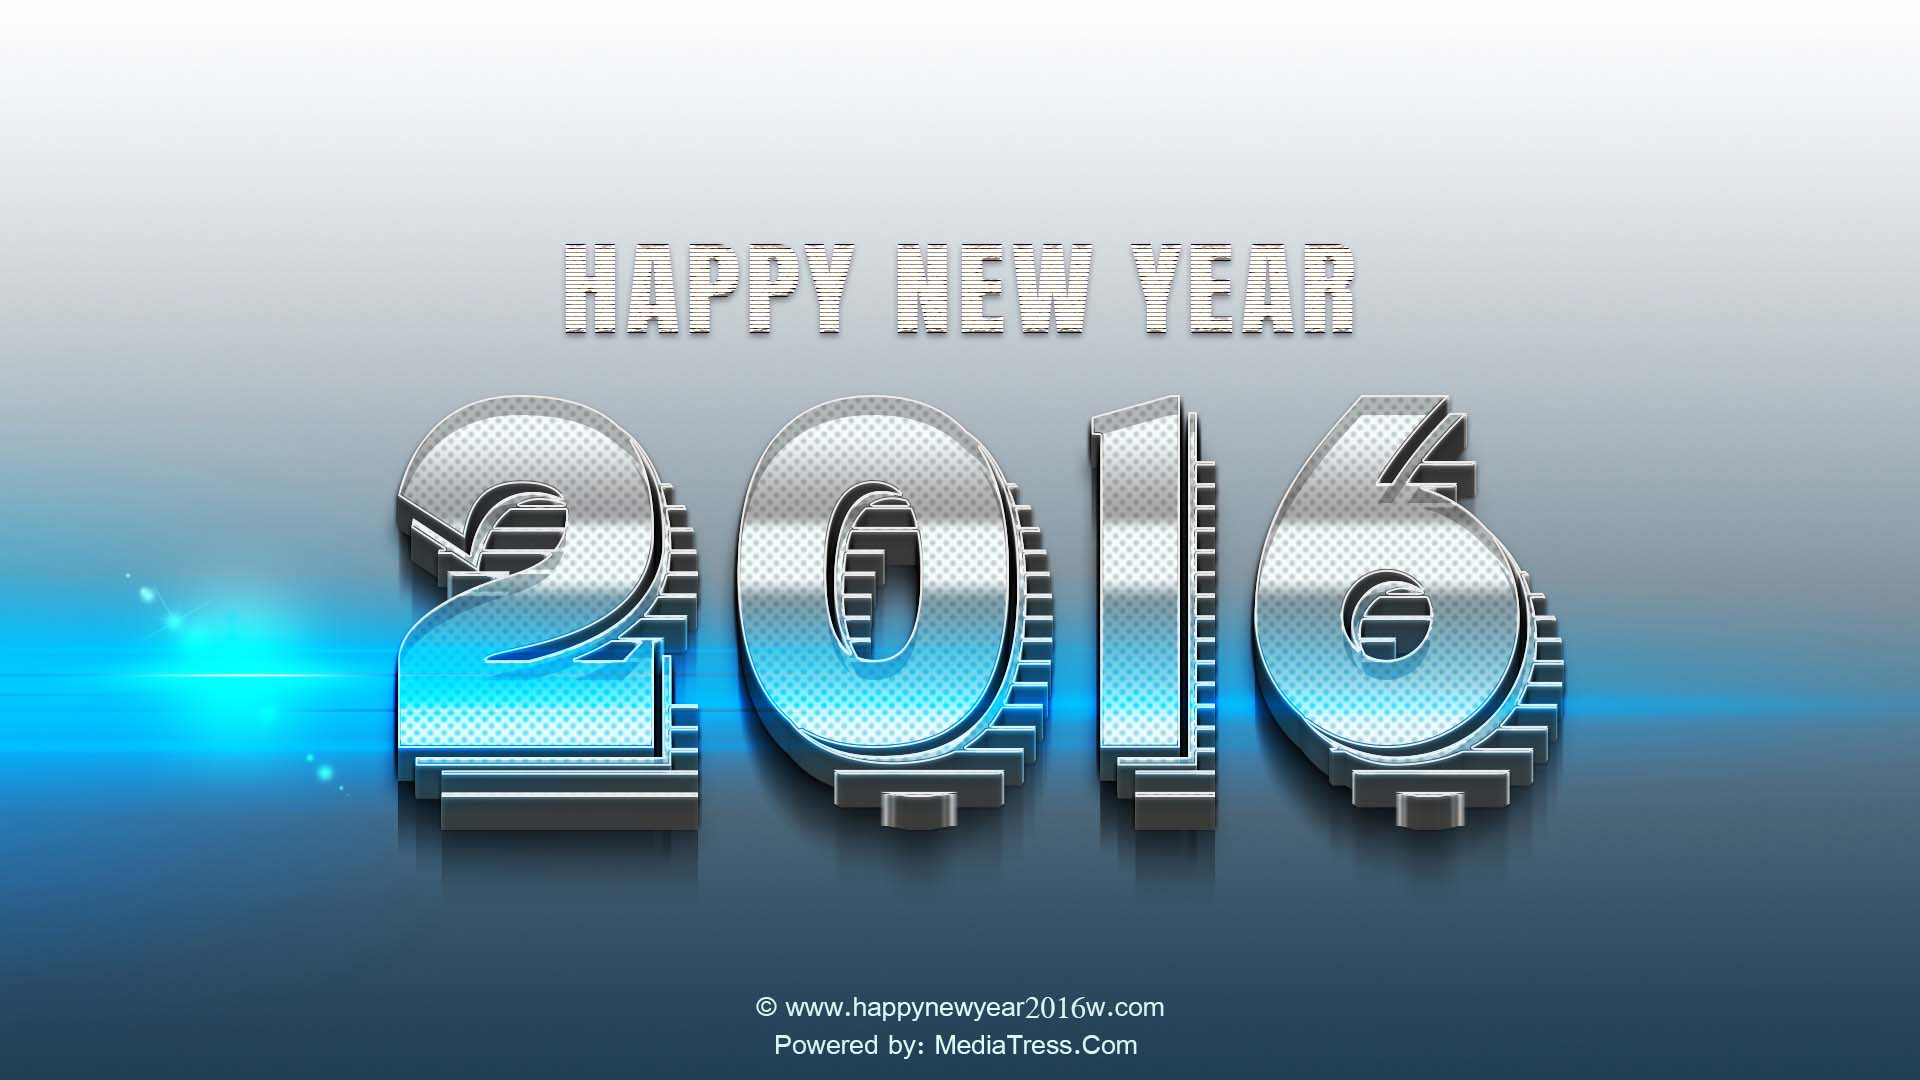 New Year 2016 Pictures 3D Wallpapers Written On It Happy New Year 2016 1920x1080